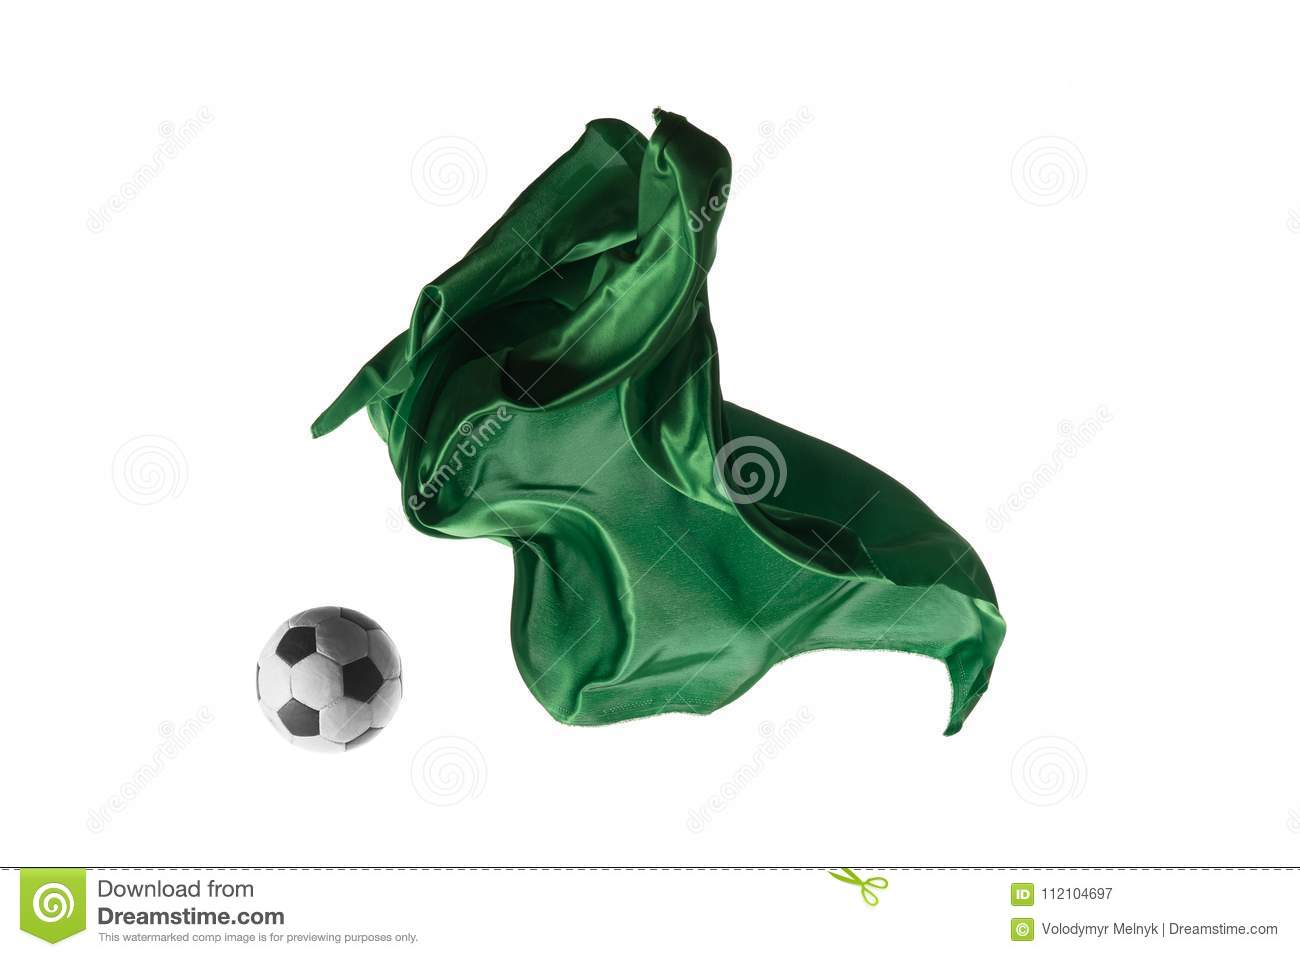 Soccer ball and Smooth elegant transparent green cloth isolated or separated on white studio background.